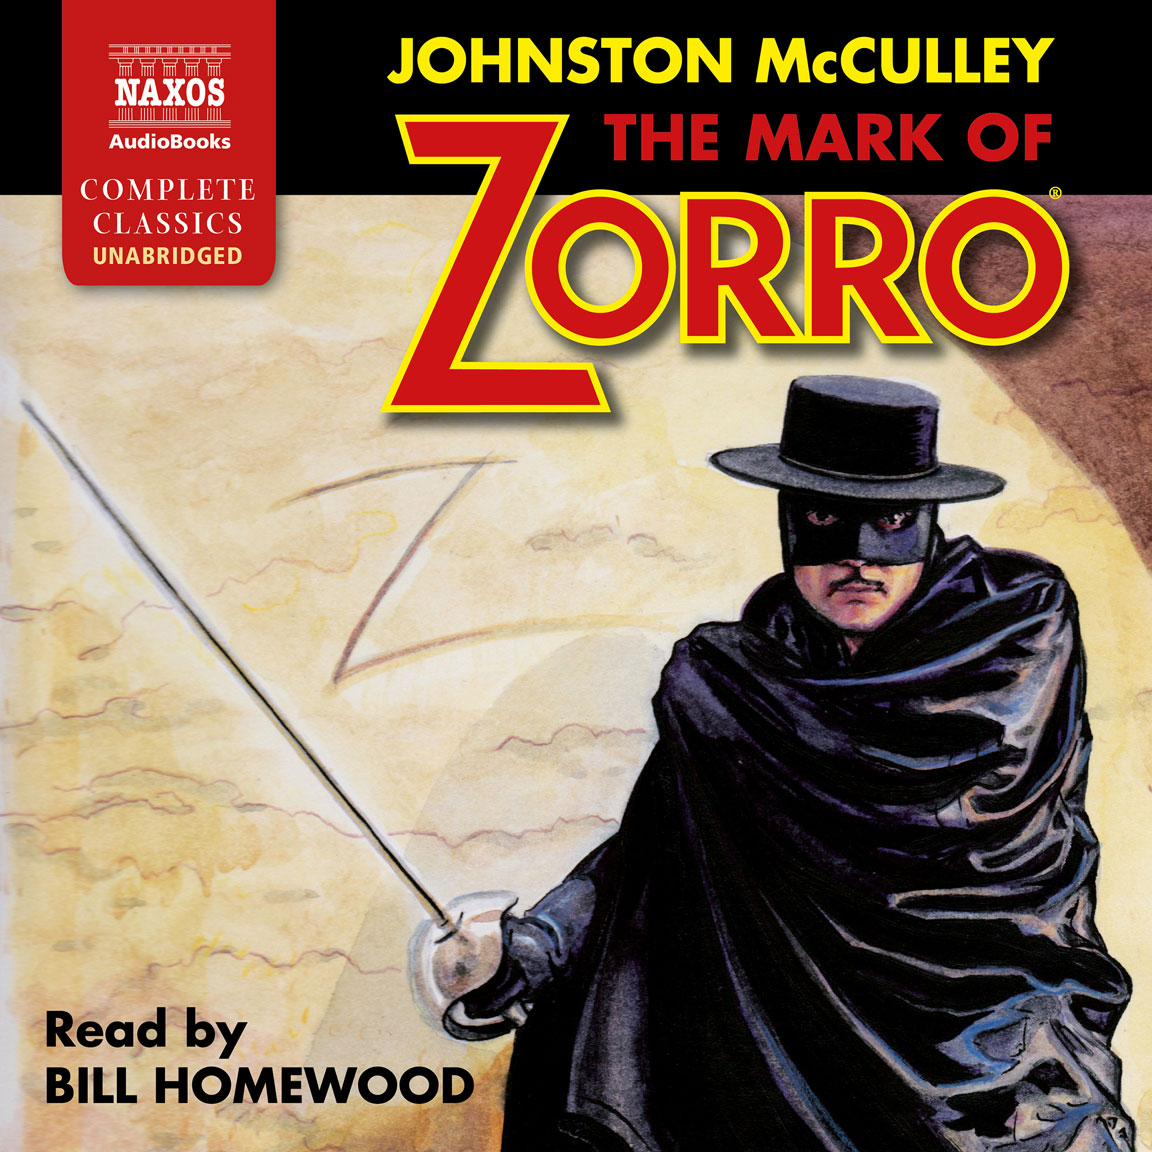 The Mark of Zorro (unabridged)